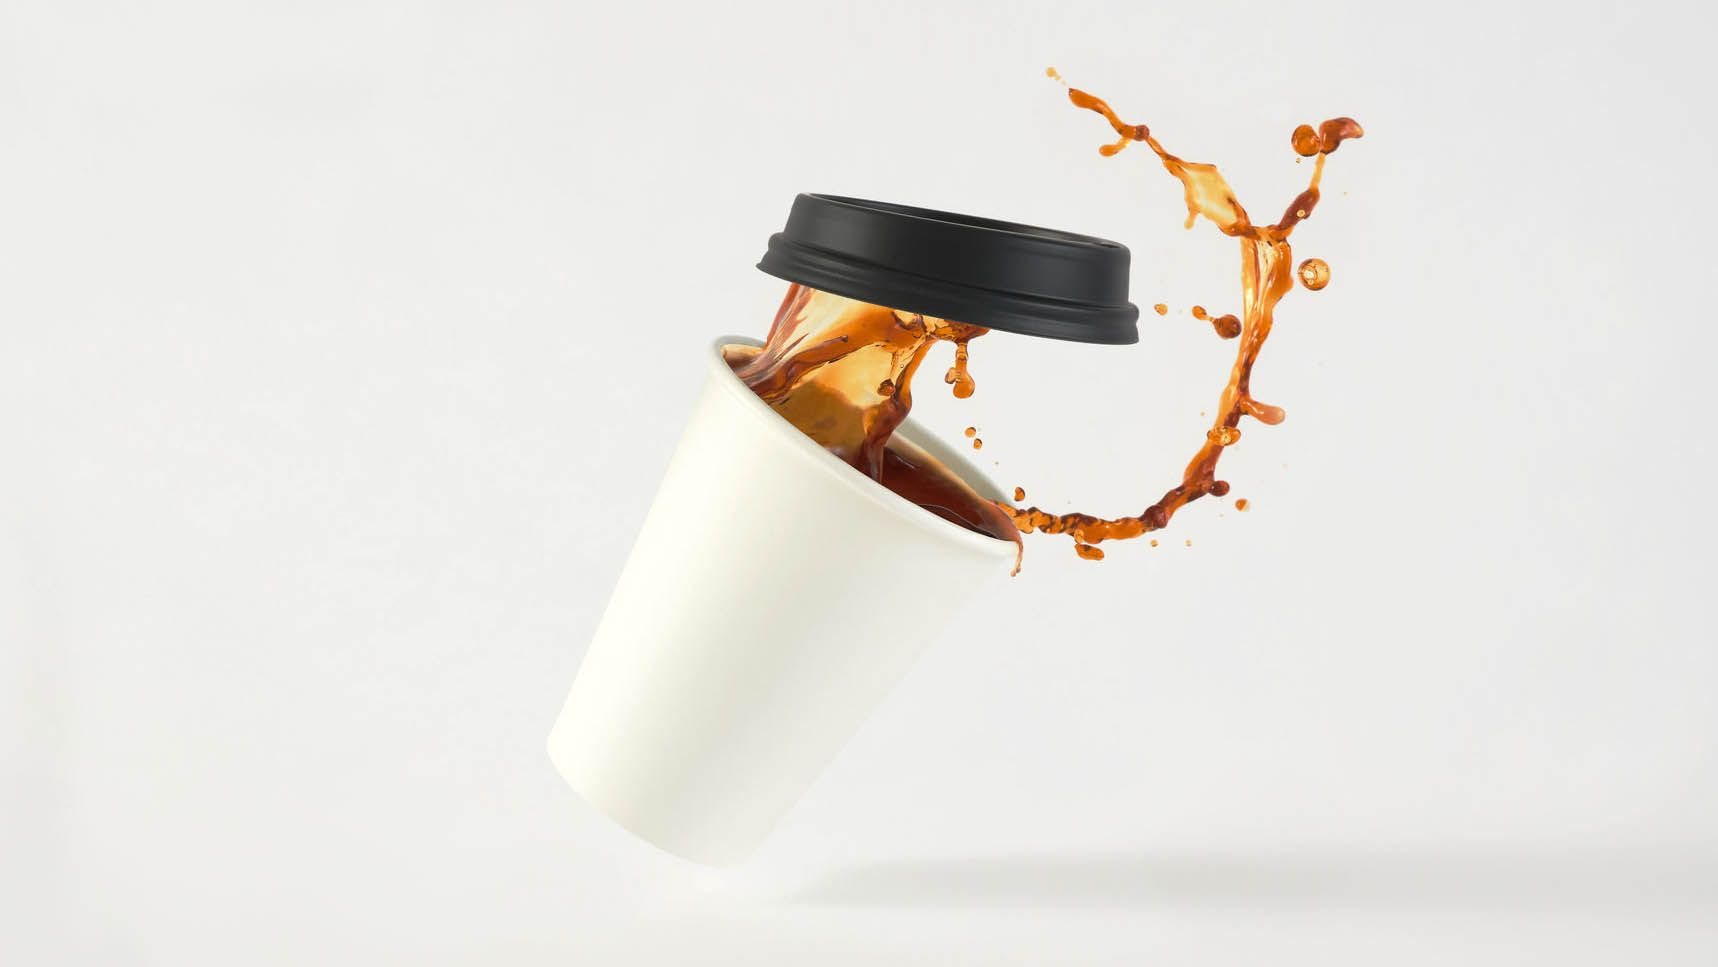 what roast has the most caffeine